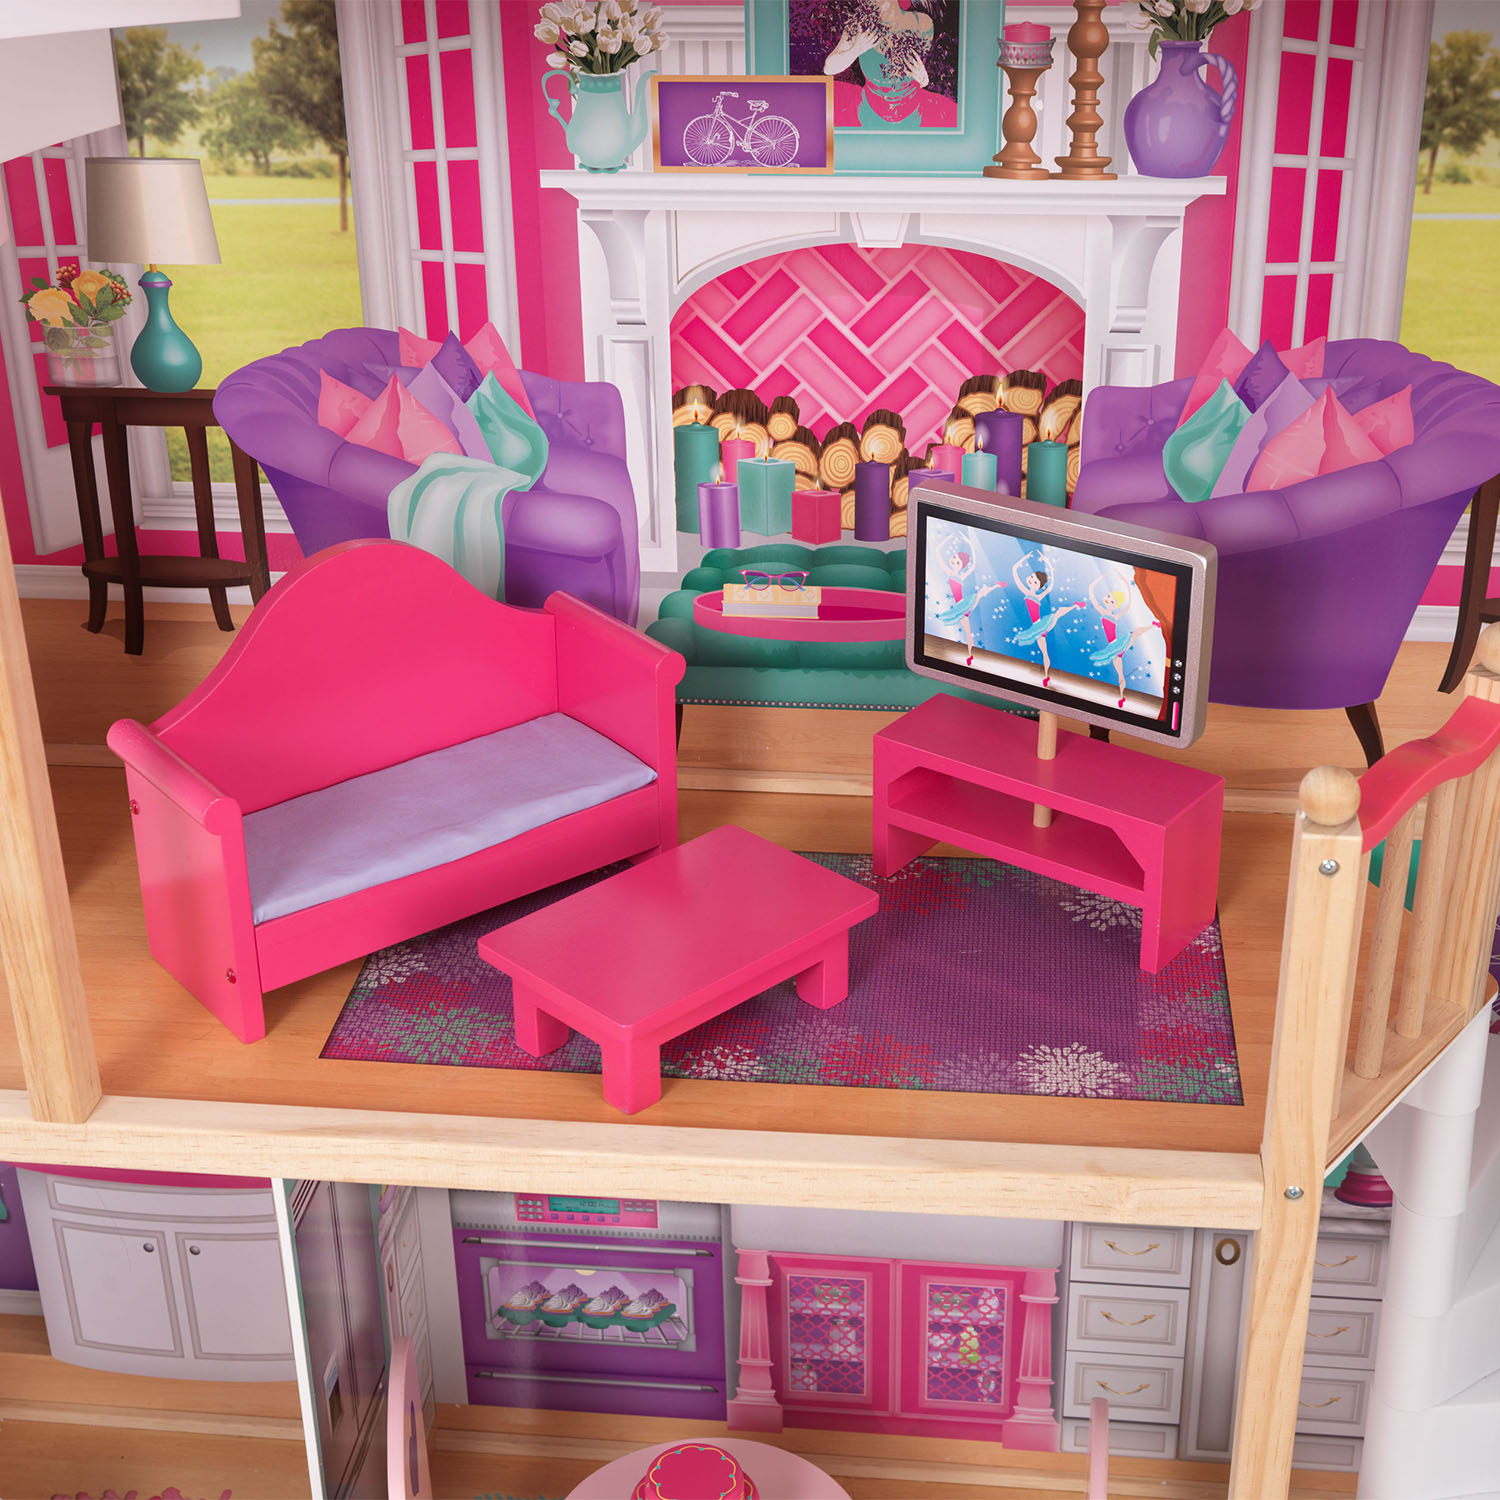 Kidkraft 18 Inch Colorful Dollhouse Doll Manor With Jumbo Furniture 65830 Ebay